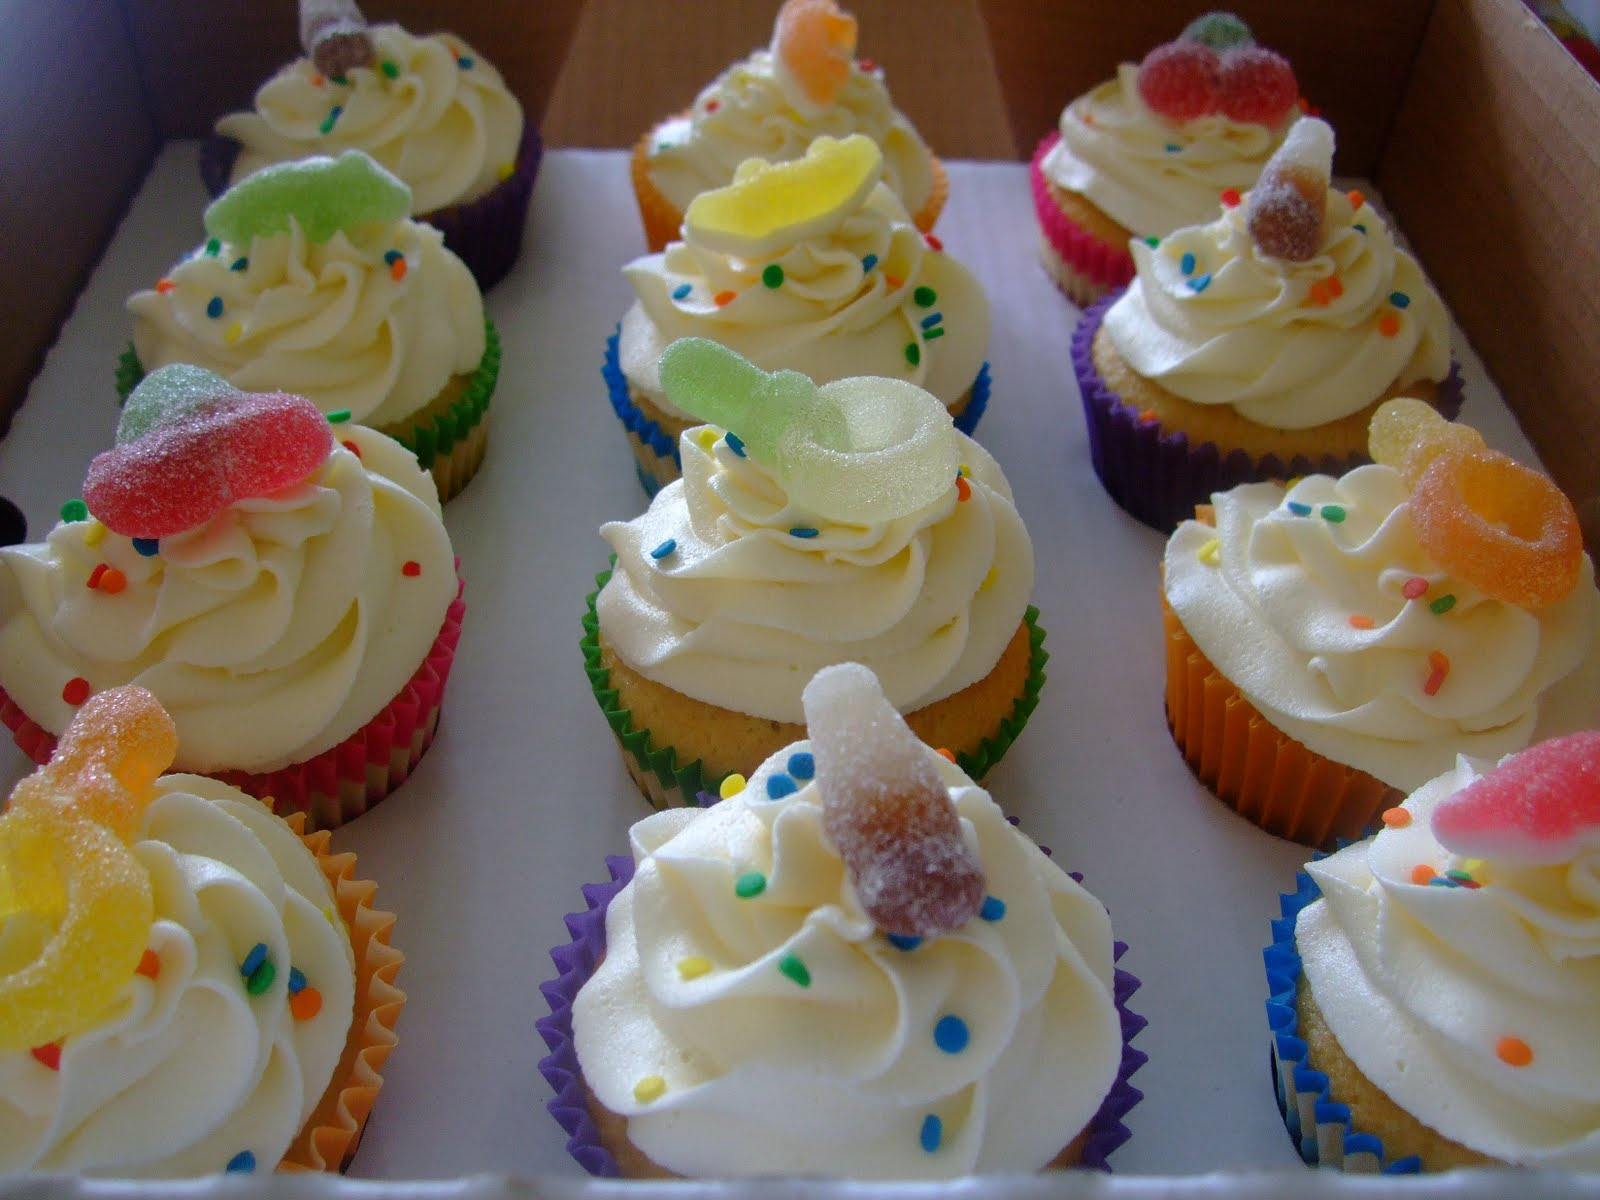 Colourful Cupcakes of Newbury: Fizzy Sweet Cupcakes